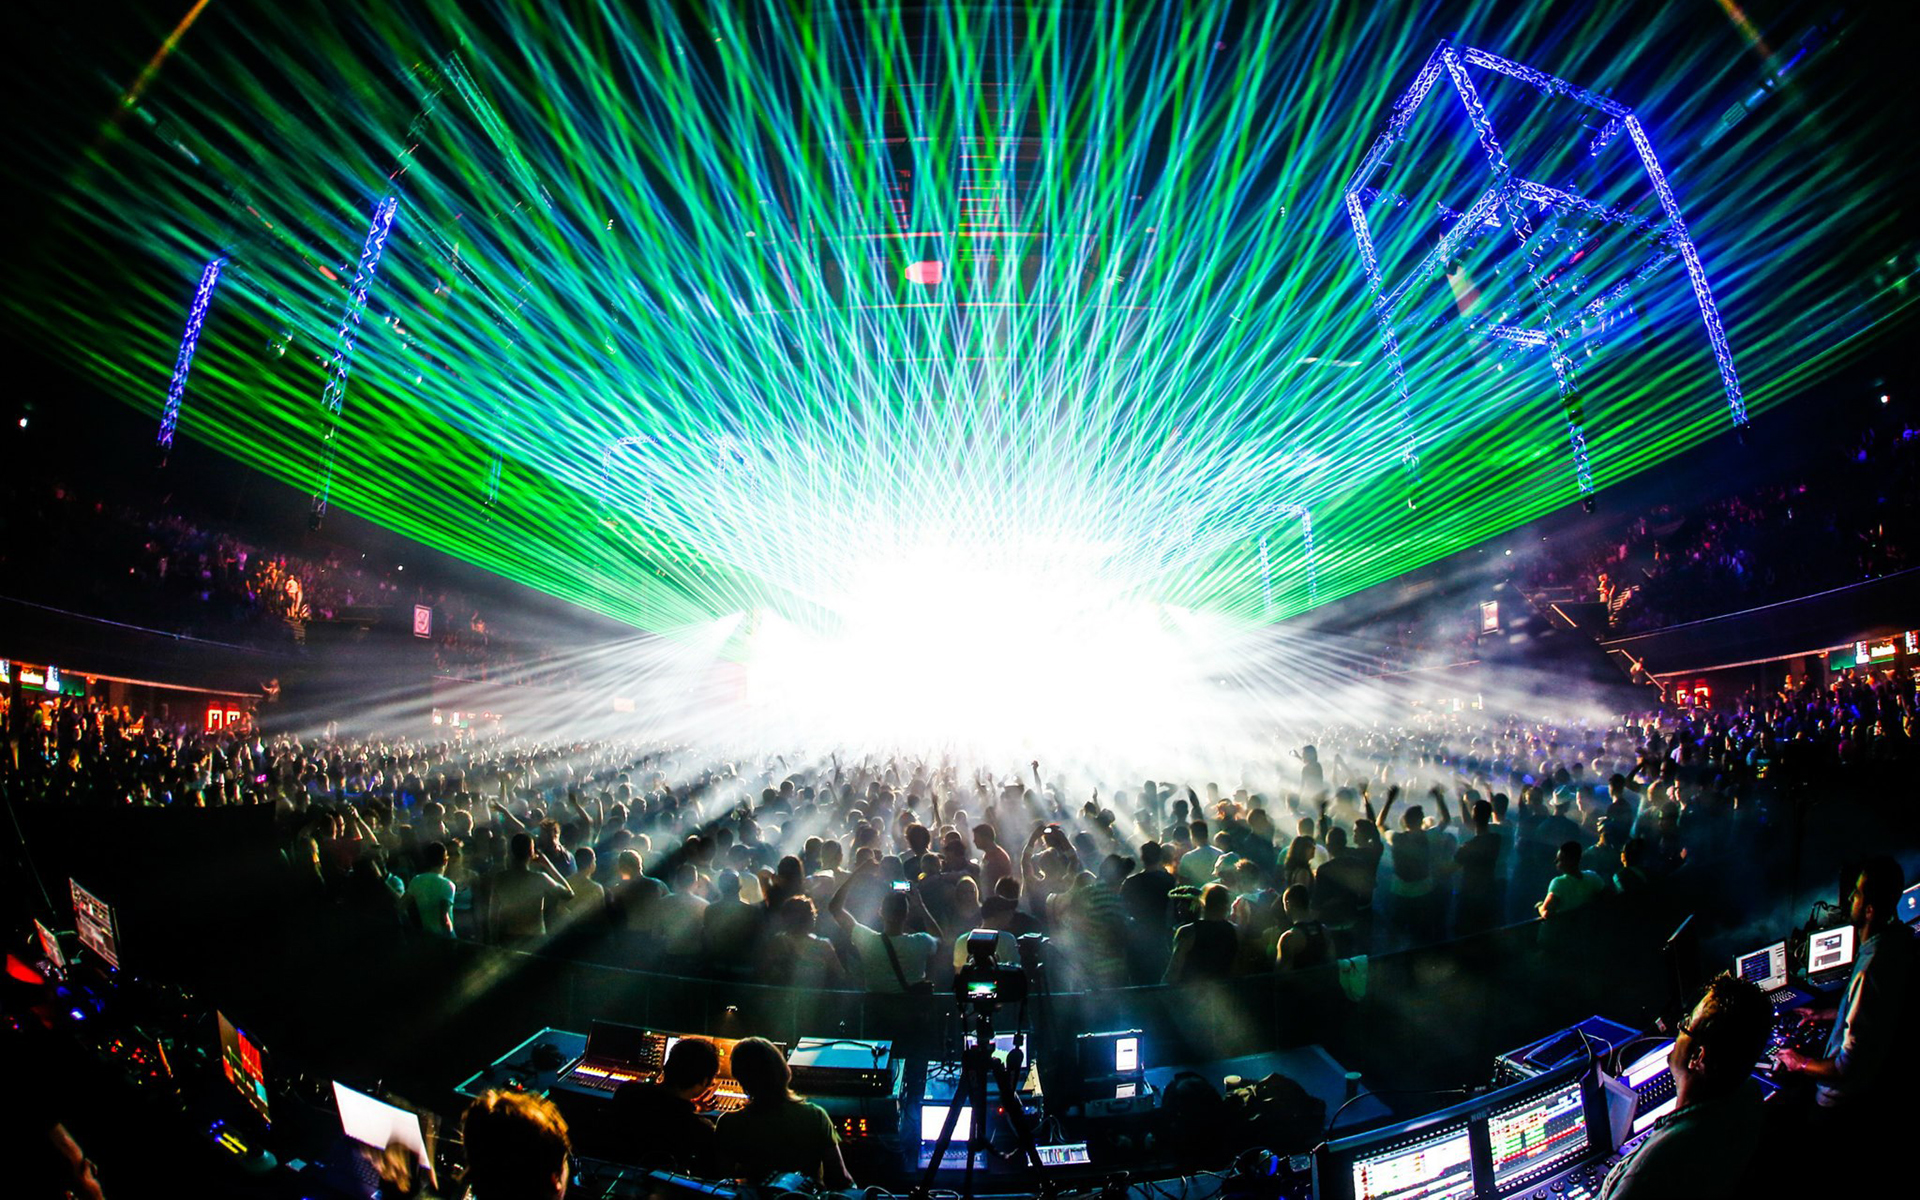 Rave Laser Concert Crowd wallpaper 1920x1200 35334 WallpaperUP 1920x1200